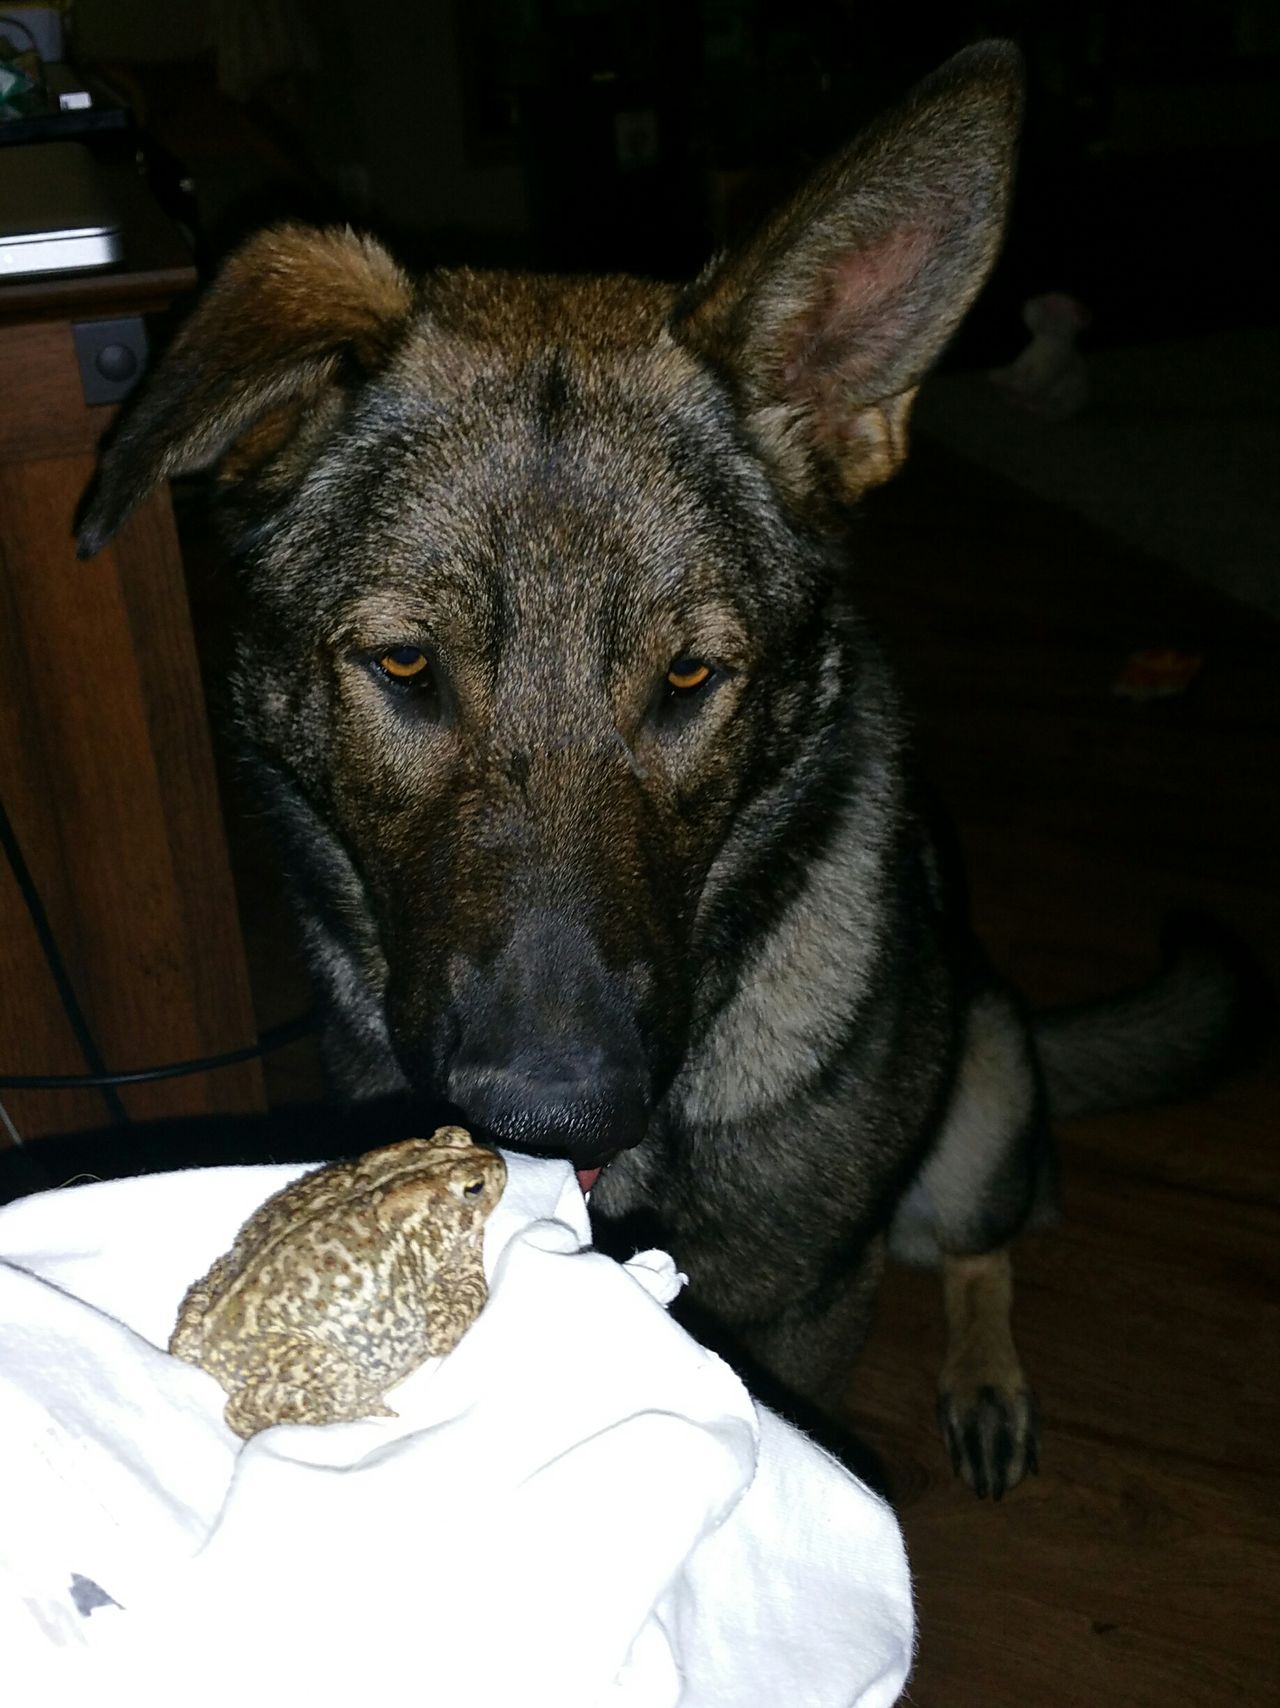 I swear, this dog! Second time now my 100 lb boy, Zeppelin, ever so gently brought his friend the toad inside to play. Hello World Check This Out Hanging Out Taking Photos German Shepherd Germanshepherd Germanshepherddog Ilovemydog Mansbestfriend Mans Best Friend Furkids Dogs Of EyeEm Dog Love Toad Toads SummerNights South Dakota Southdakota